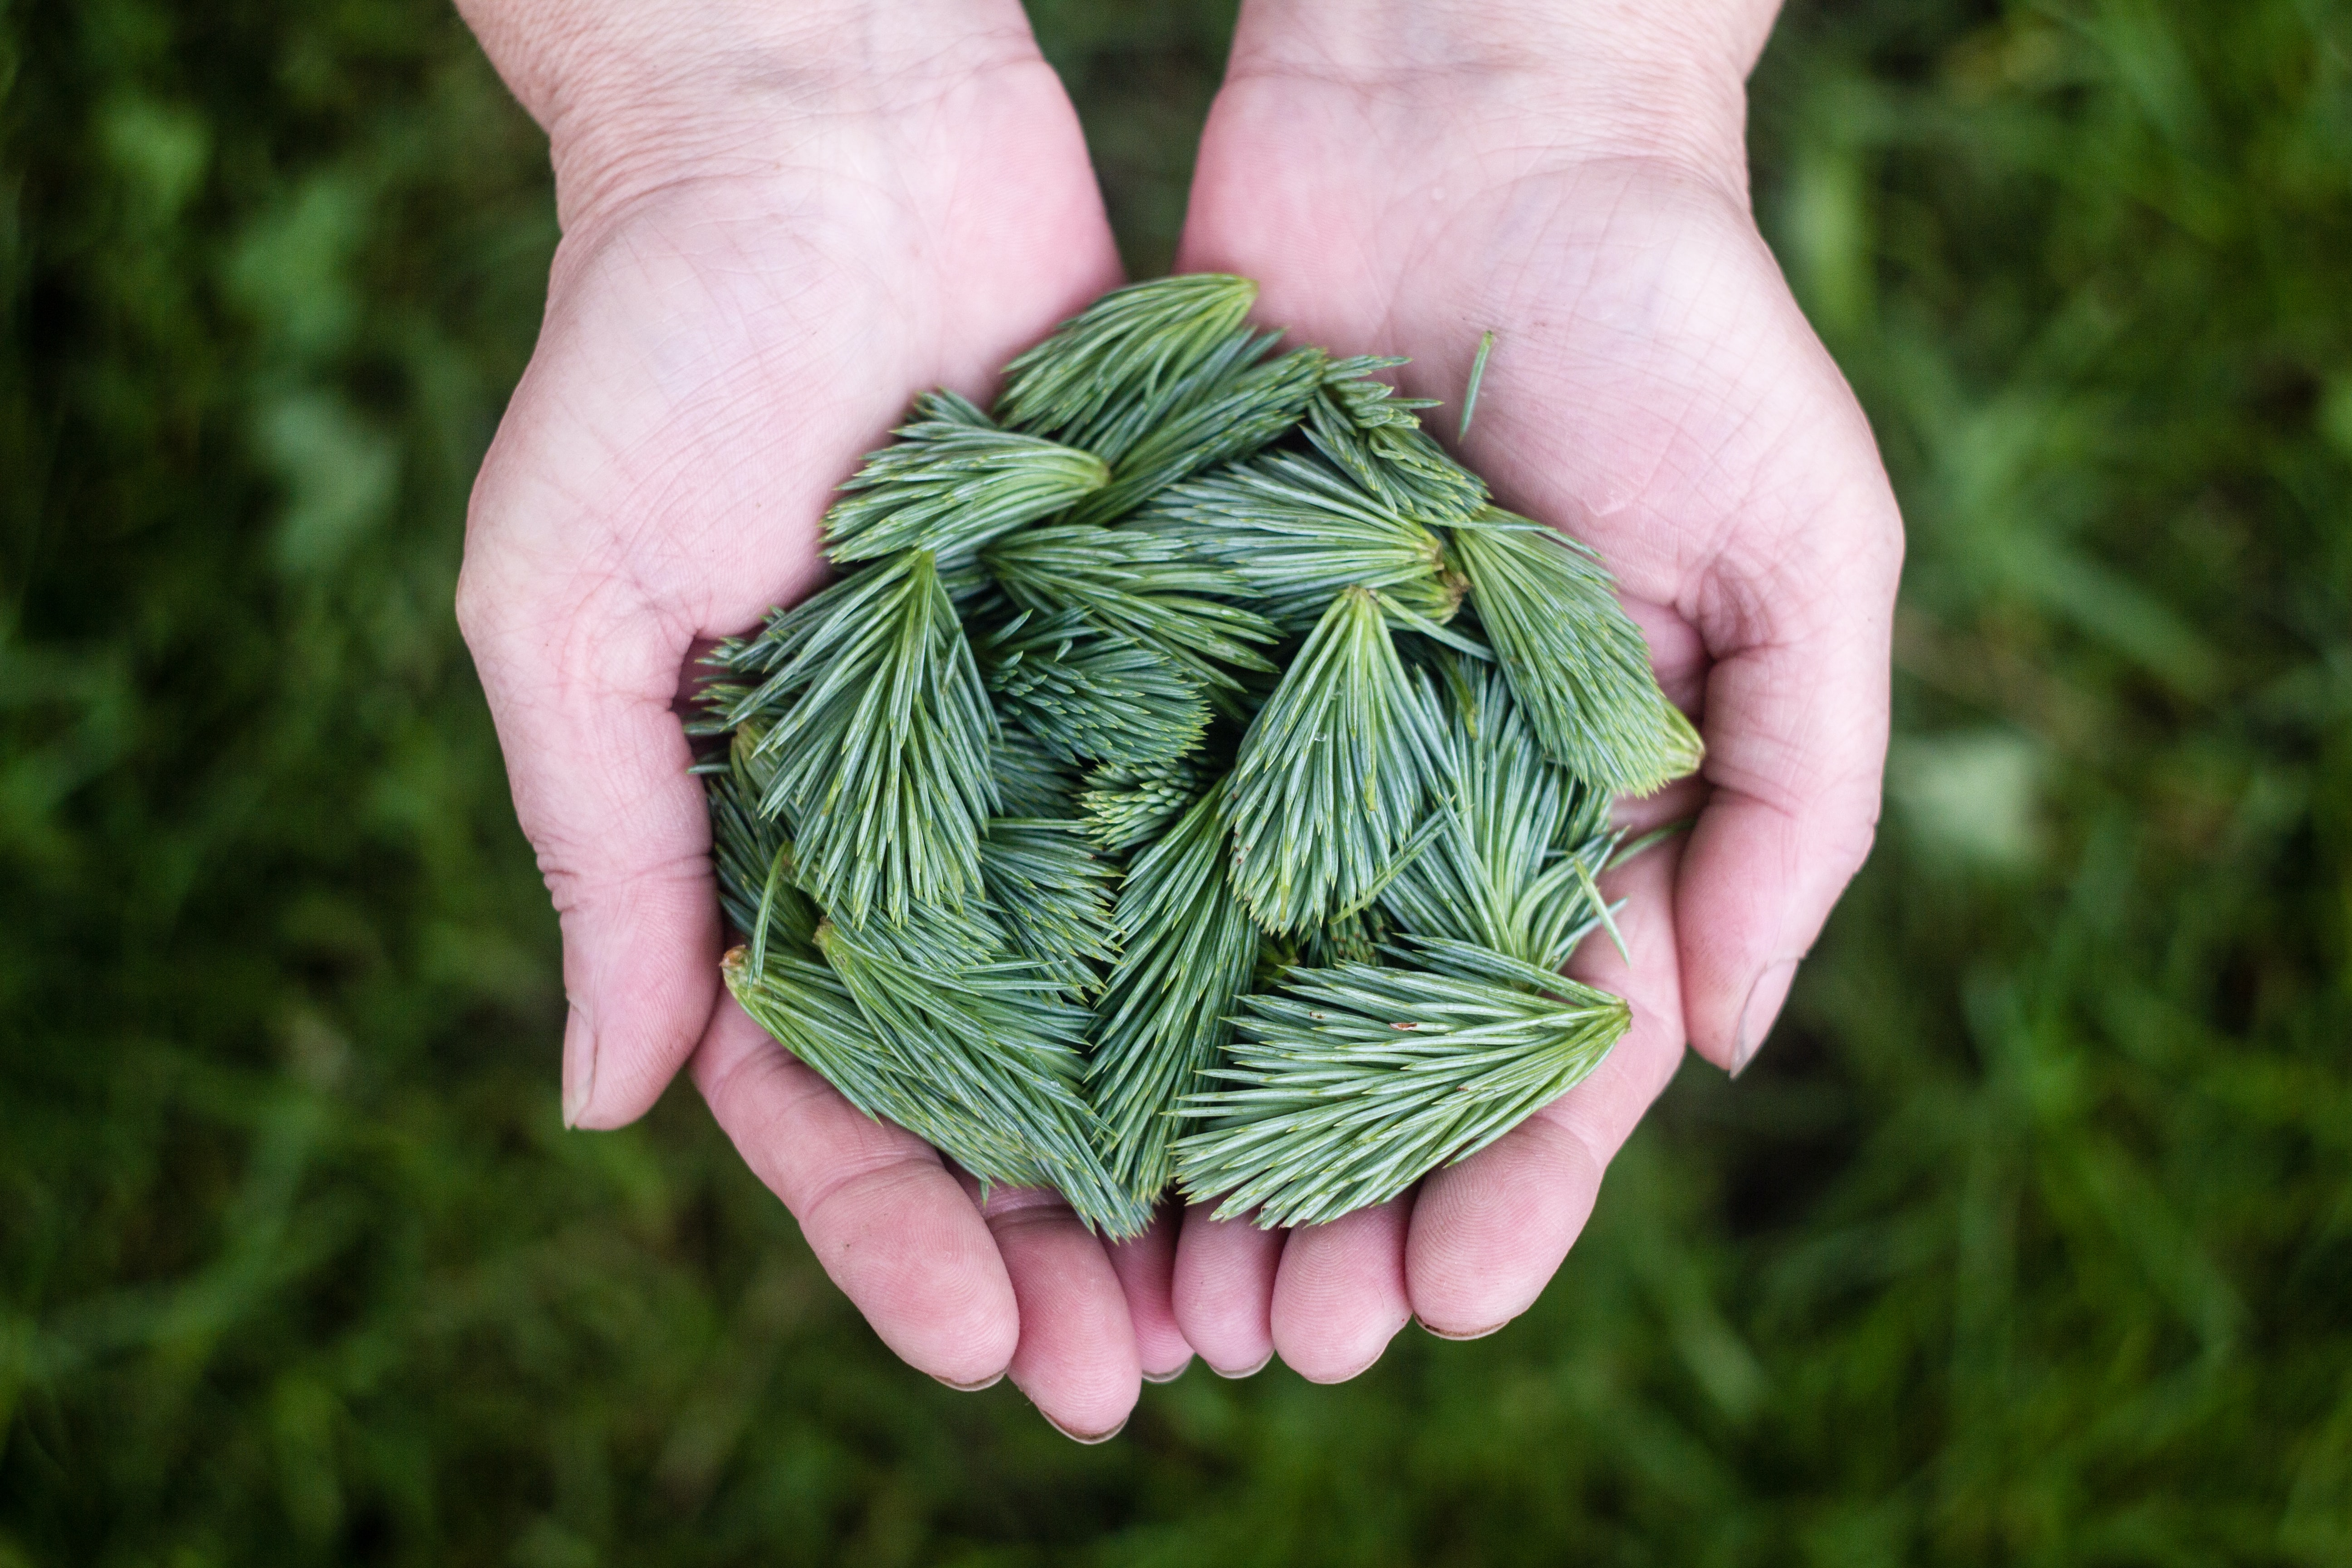 A person's cupped hands holding green branchlets of pine needles